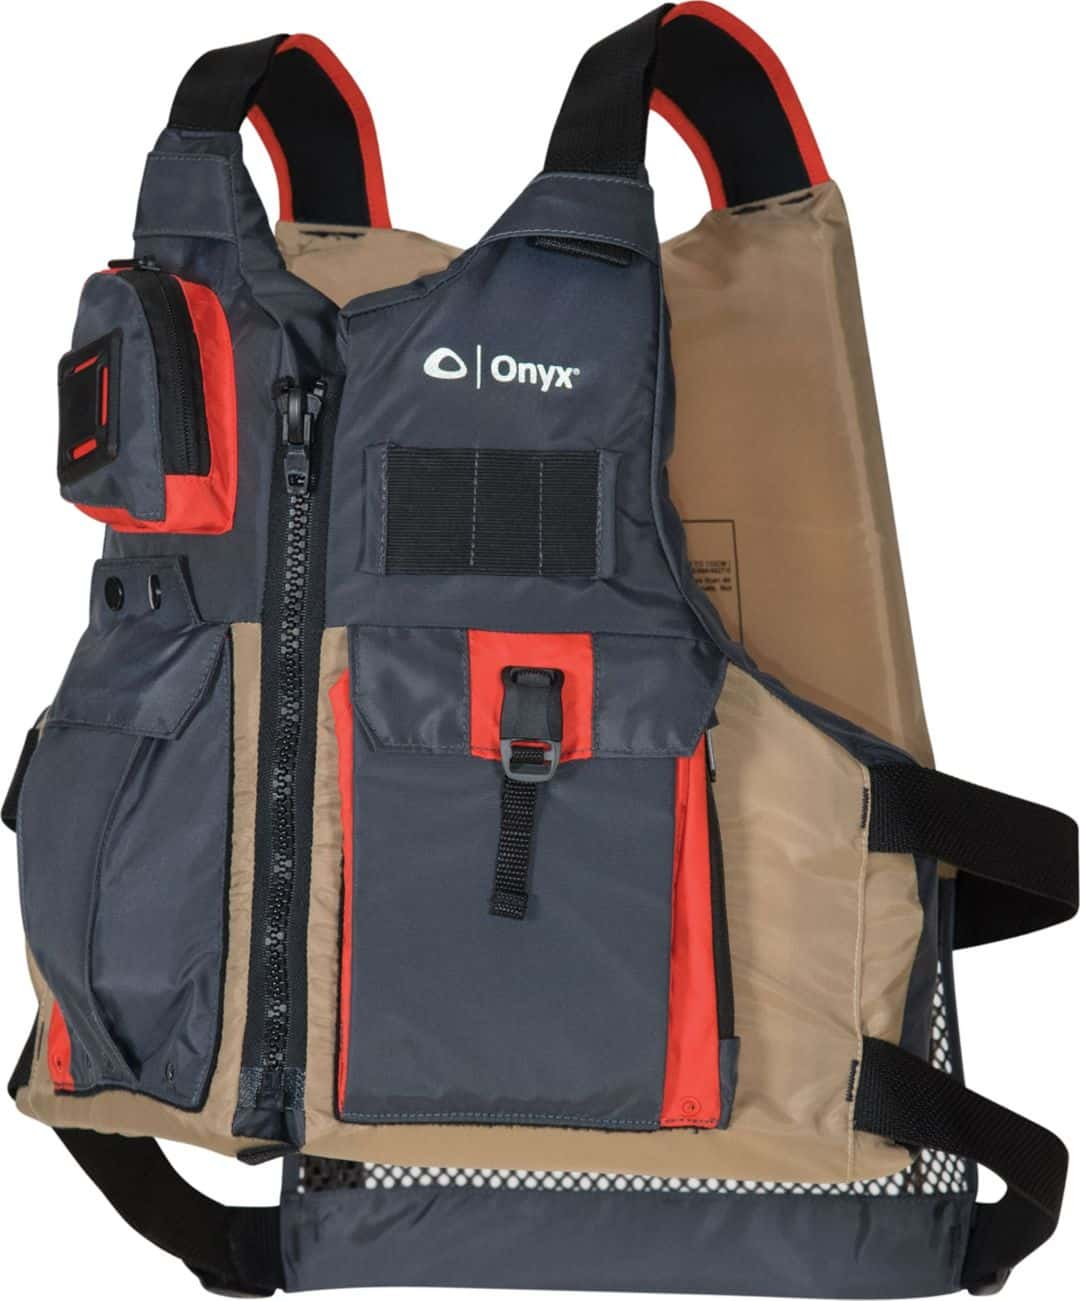 ONYX Kayak Fishing Life Jacket 5